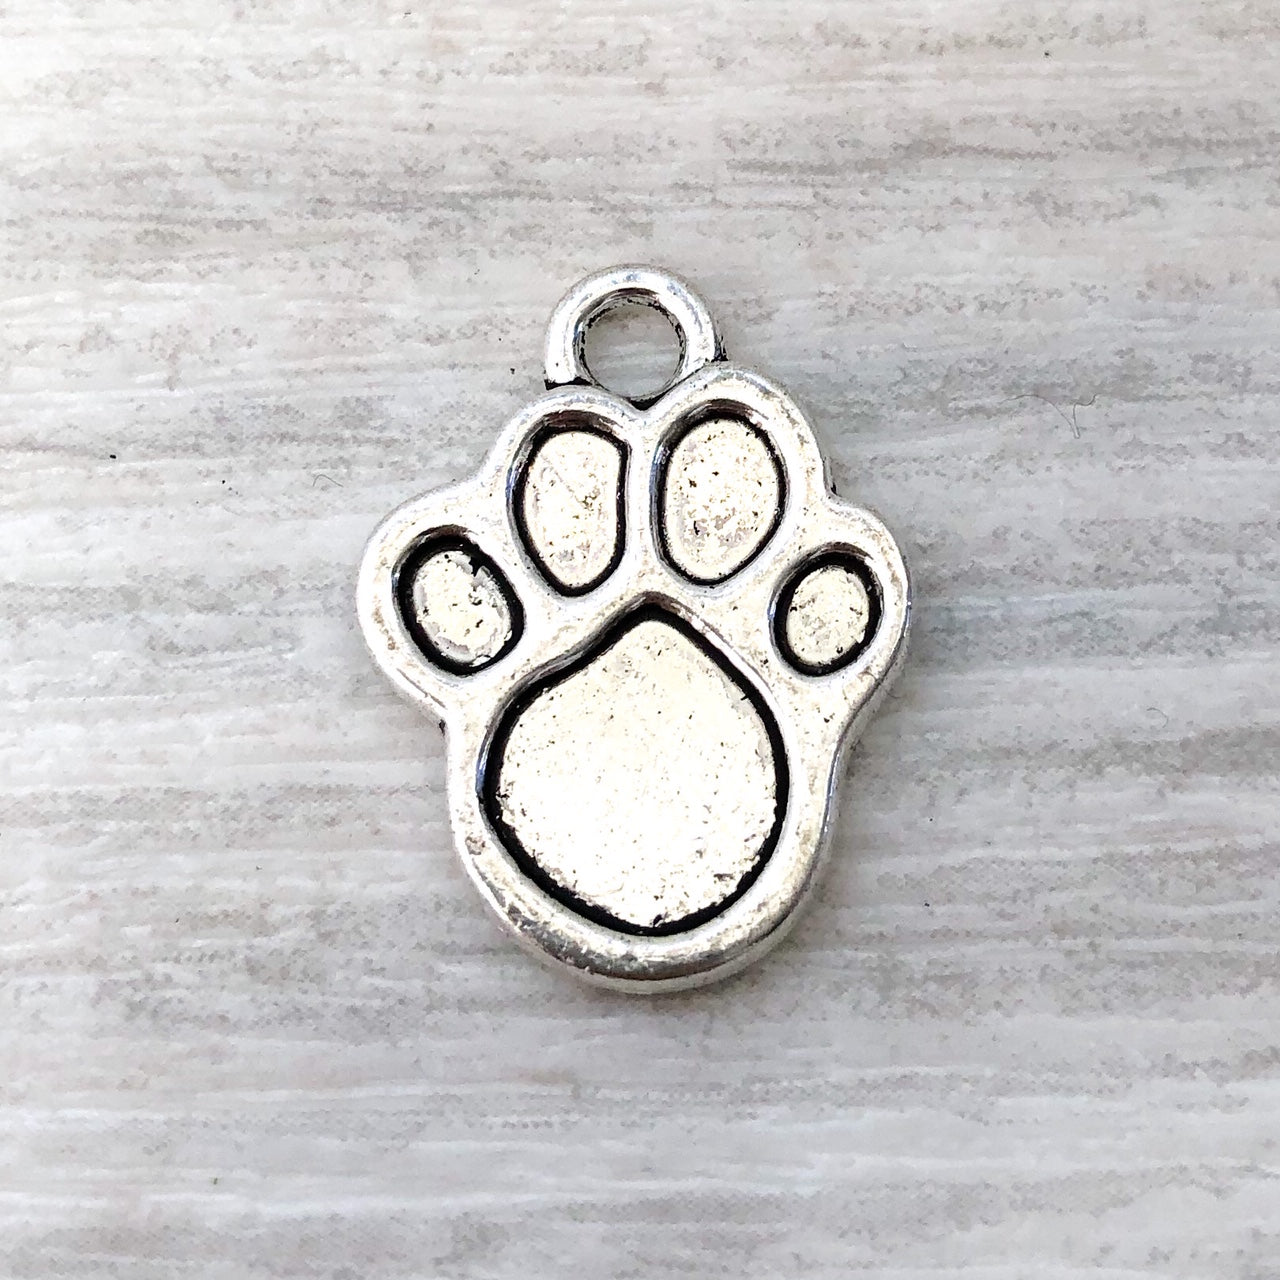 add on metal charm - Paw print